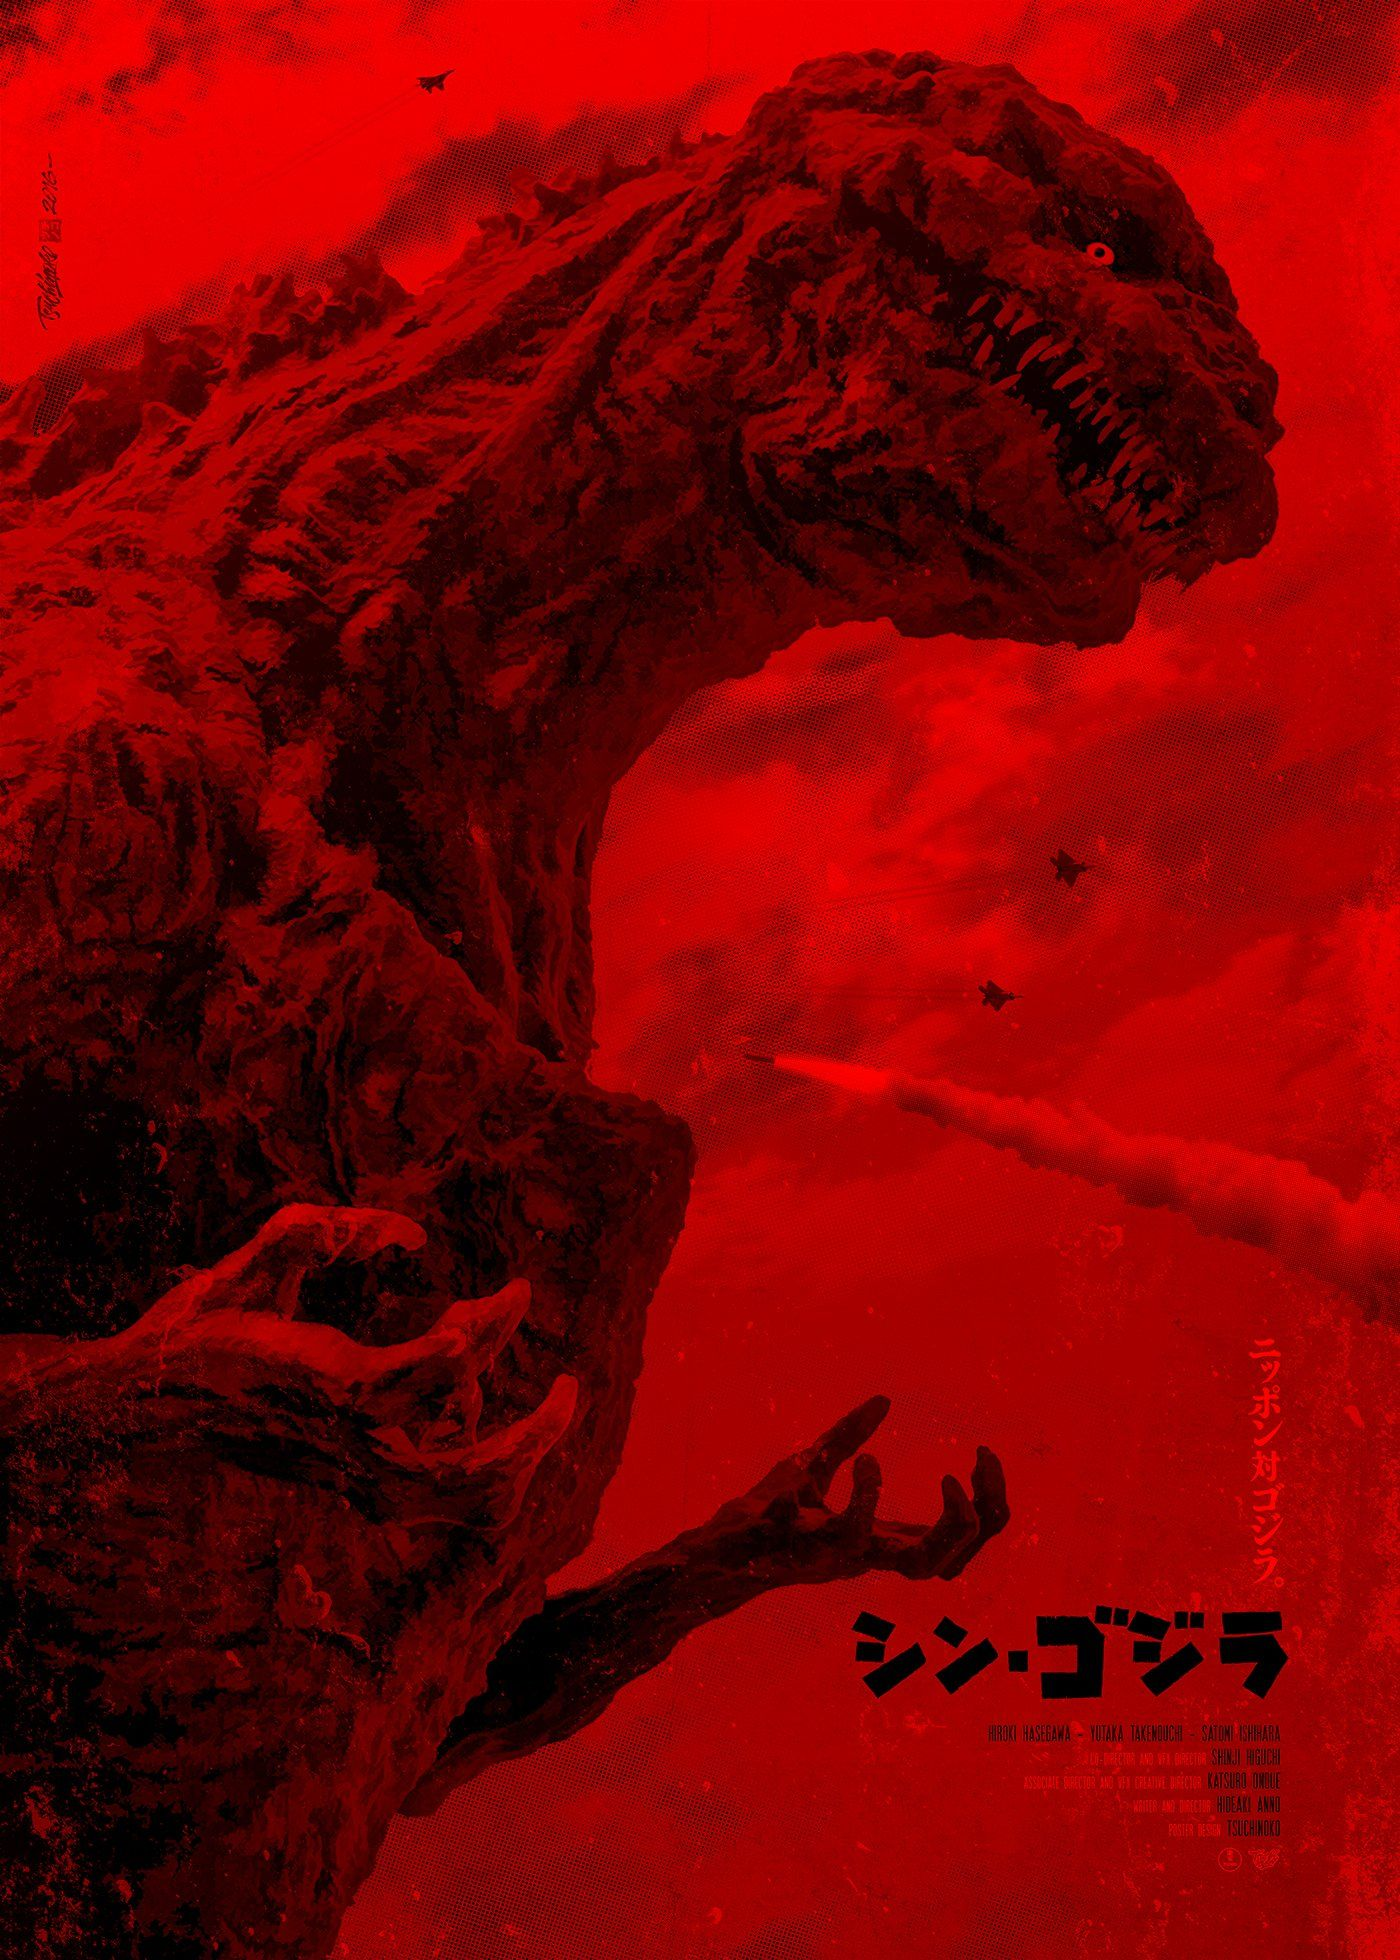 Shin Godzilla (2016) HD Wallpaper From